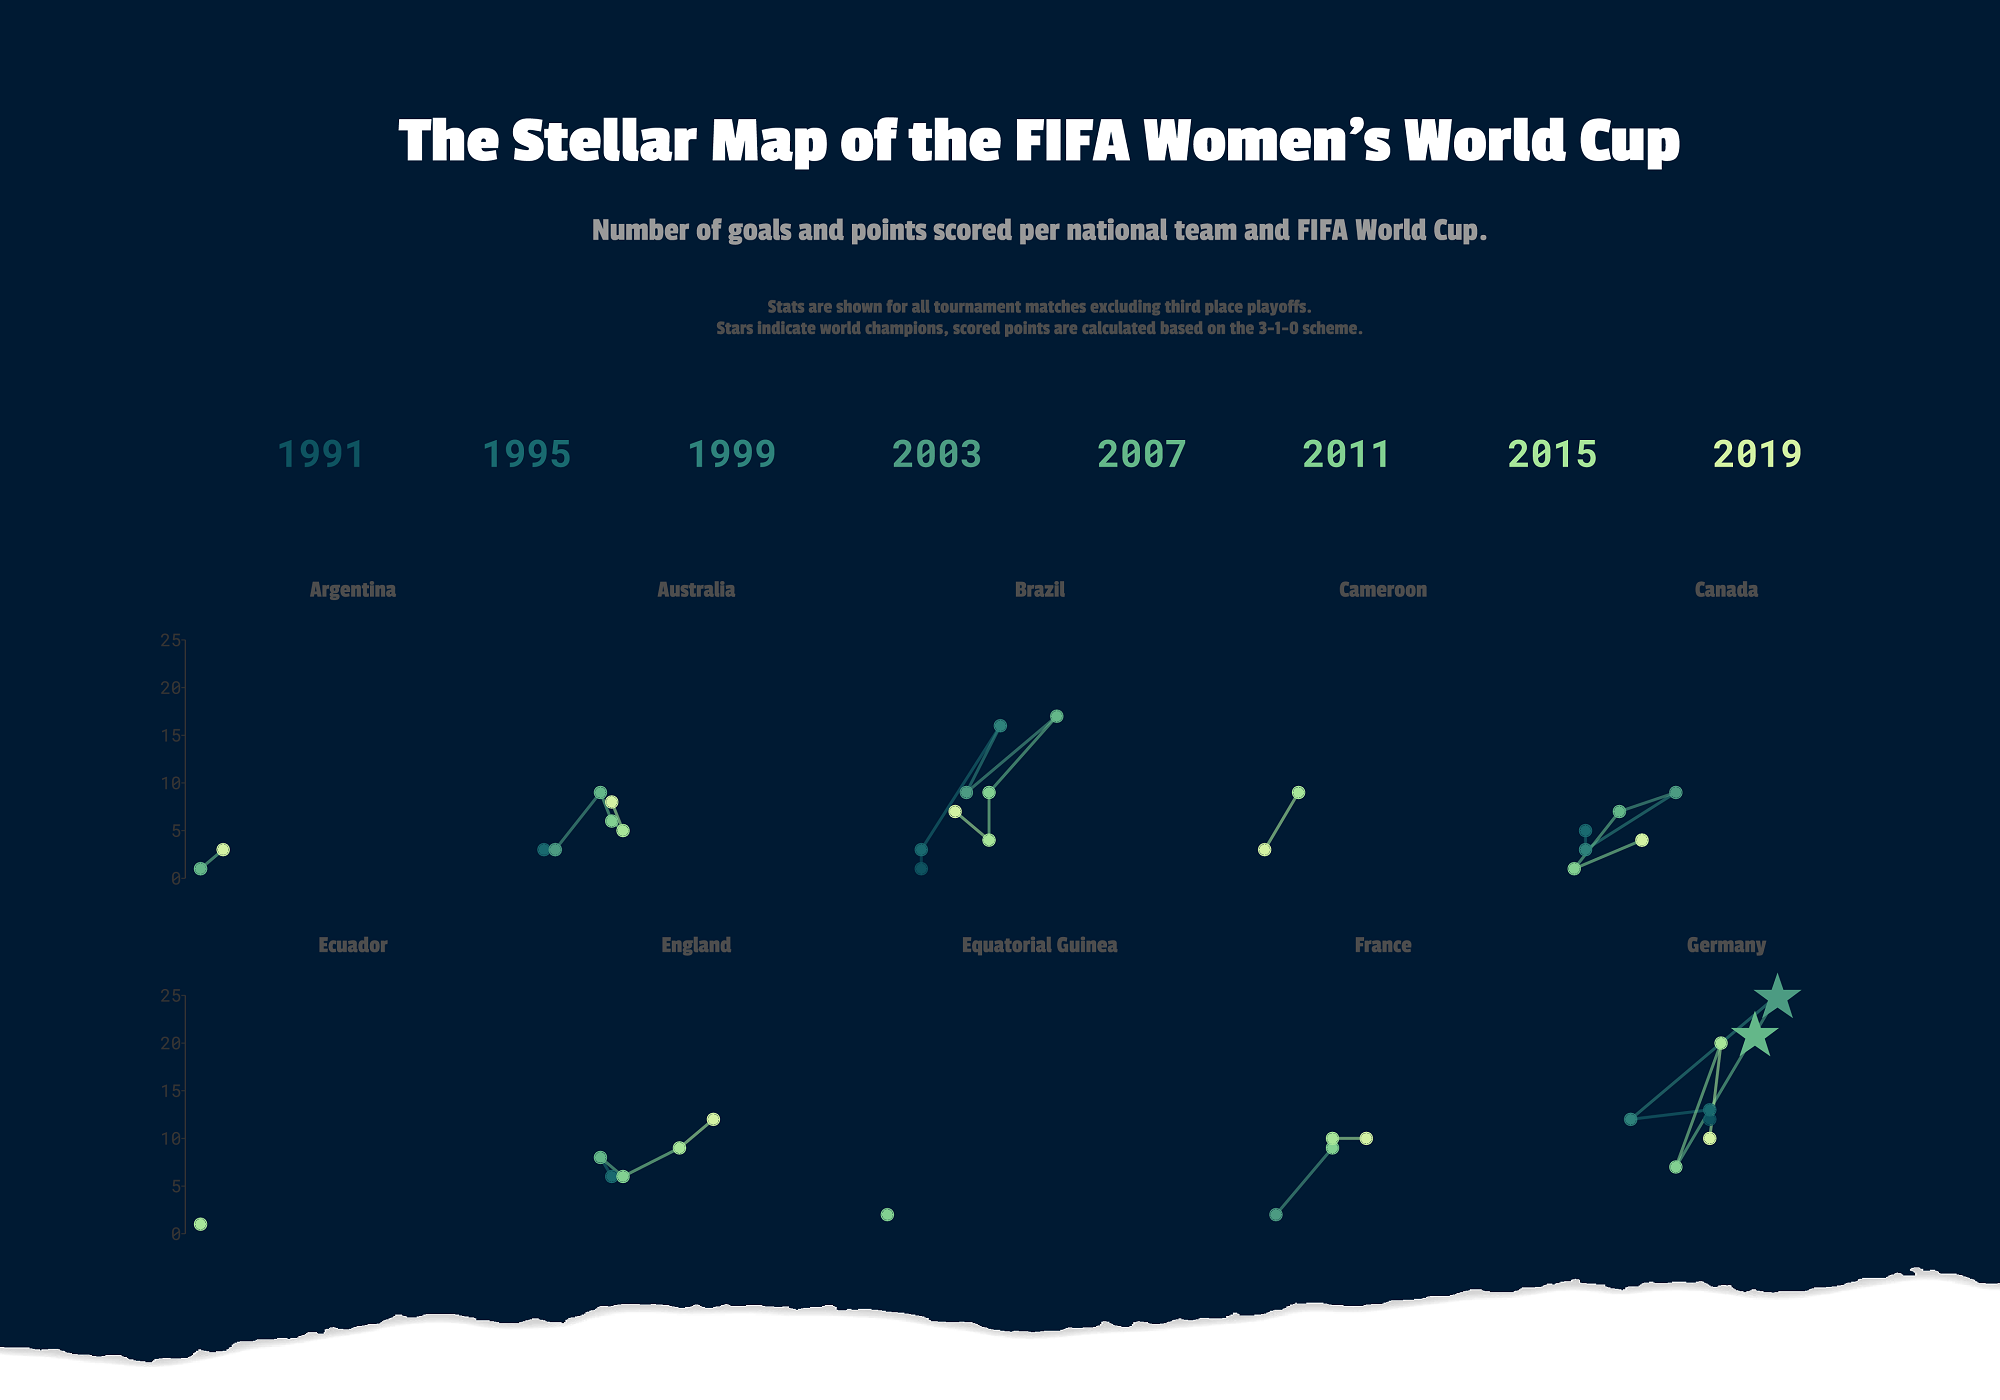 FIFA Women's World Cup Trajectories